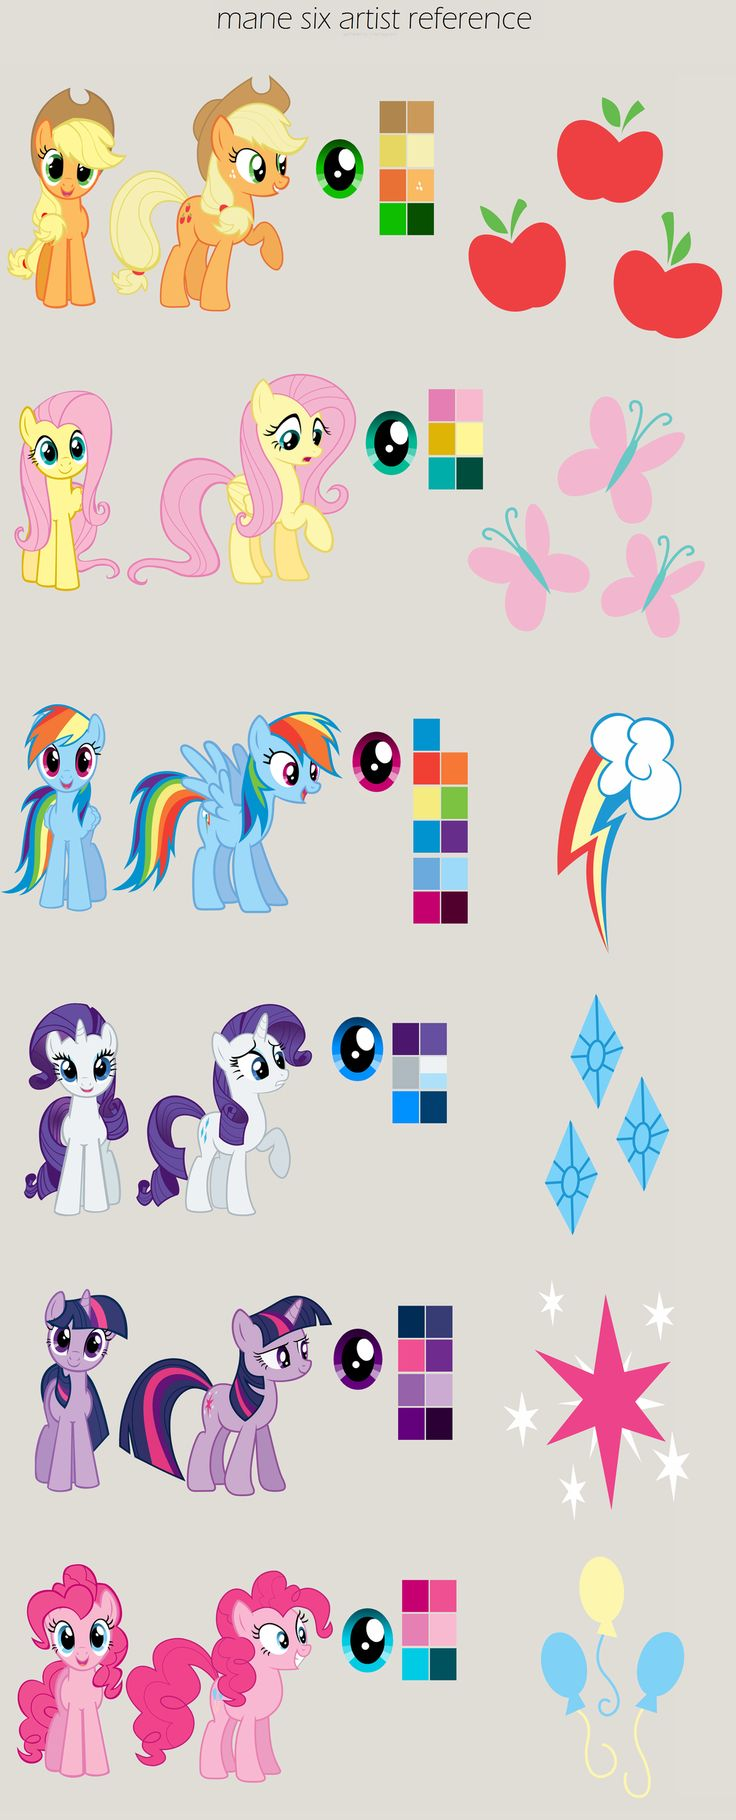 MLP:FiM Mane Six Artist Reference by *missmagikarp on deviantART my little pony friendship is magic color reference